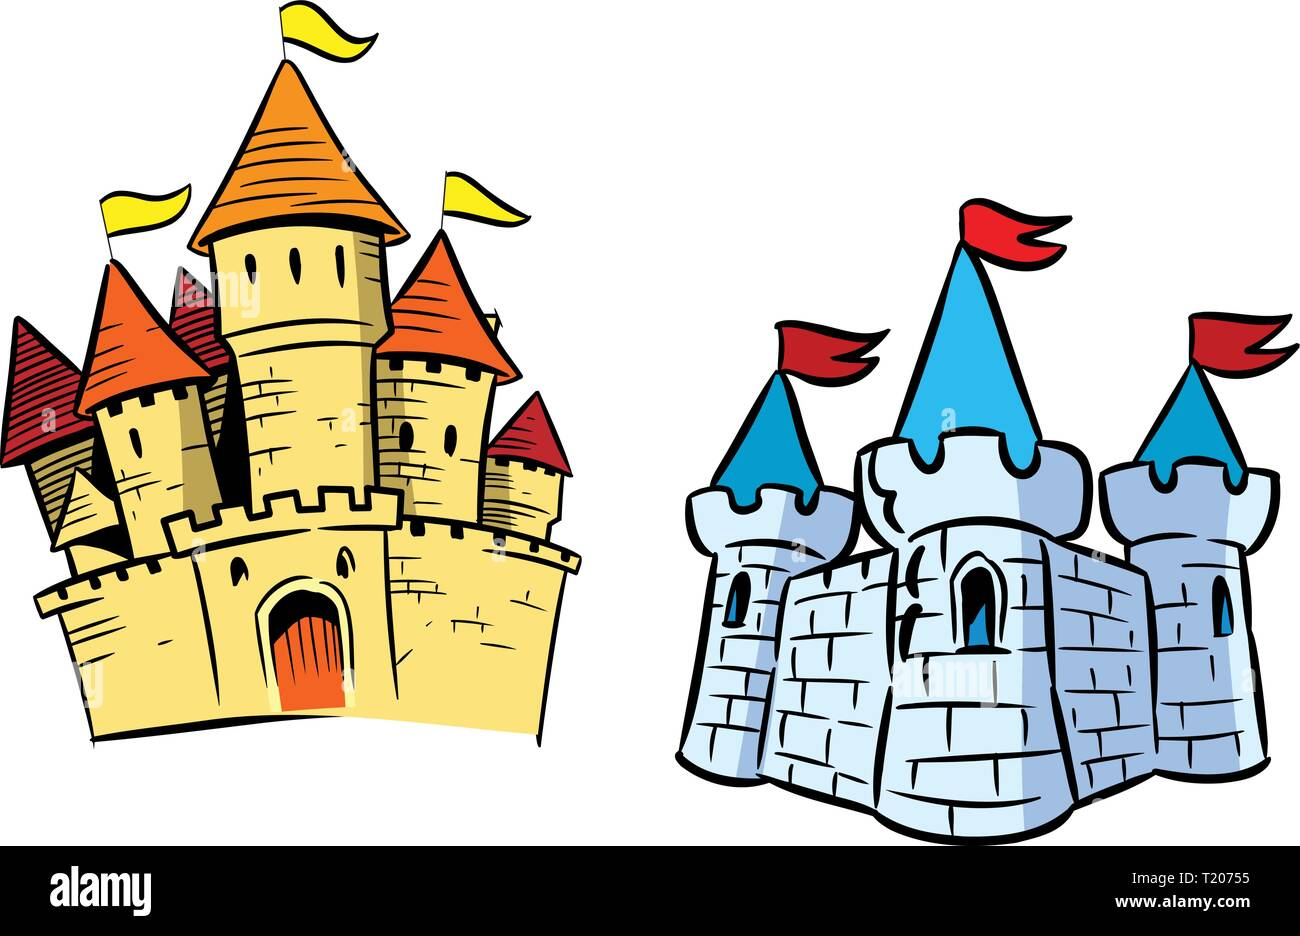 The illustration shows several types of castles in cartoon style. Illustration done on separate layers. - Stock Vector